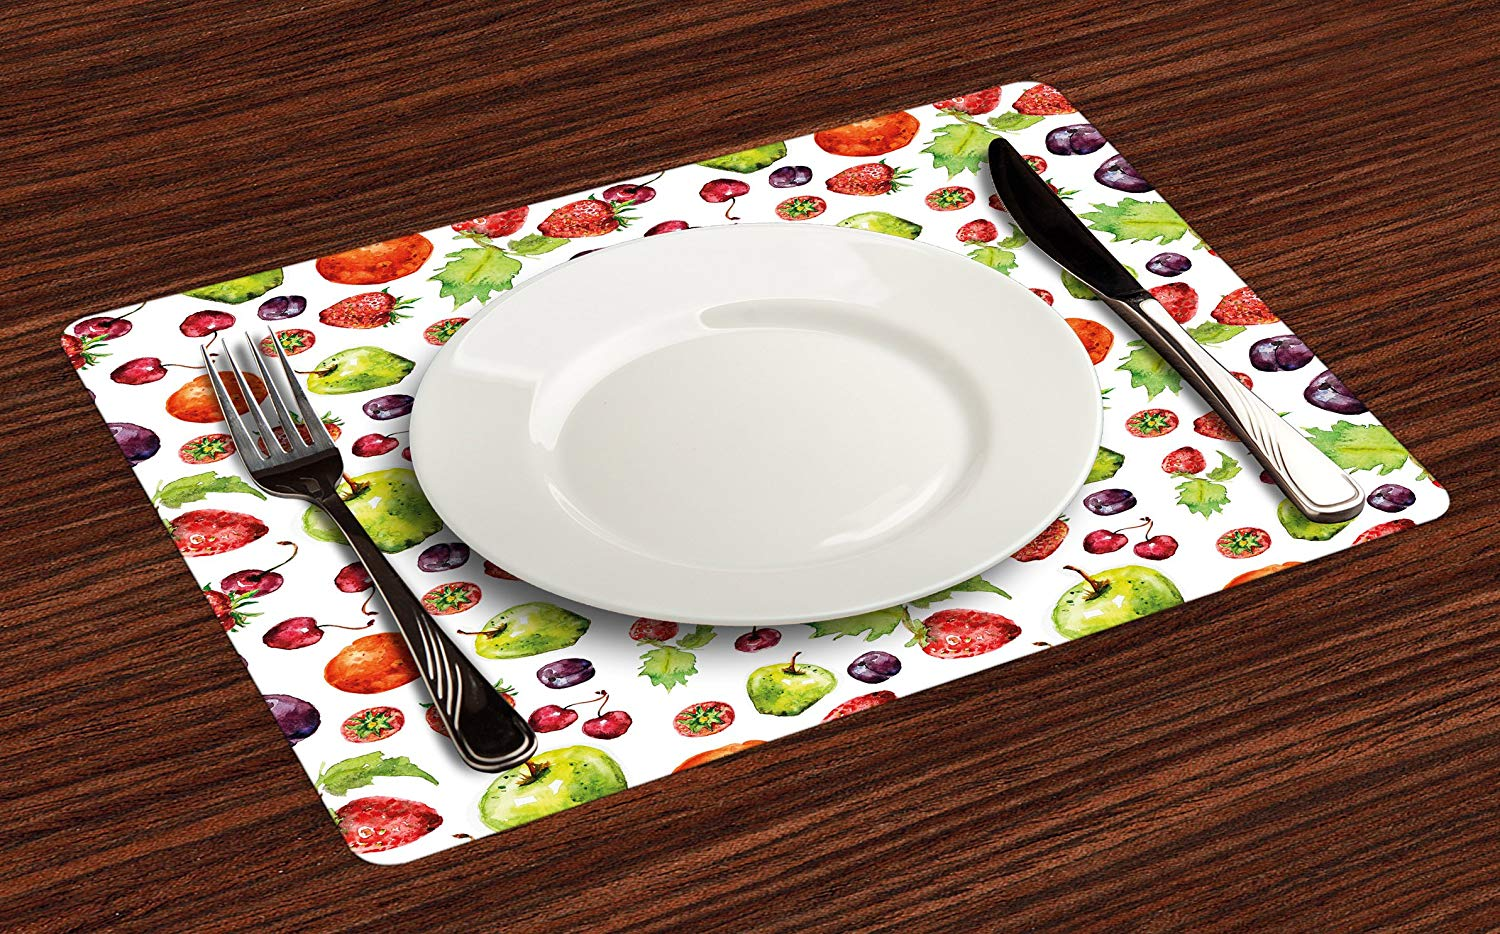 lunarable fruit place mats set strawberries pear table accent placemat cherries leaves plums apples peach fruits pattern artwork washable fabric placemats for dining wicker